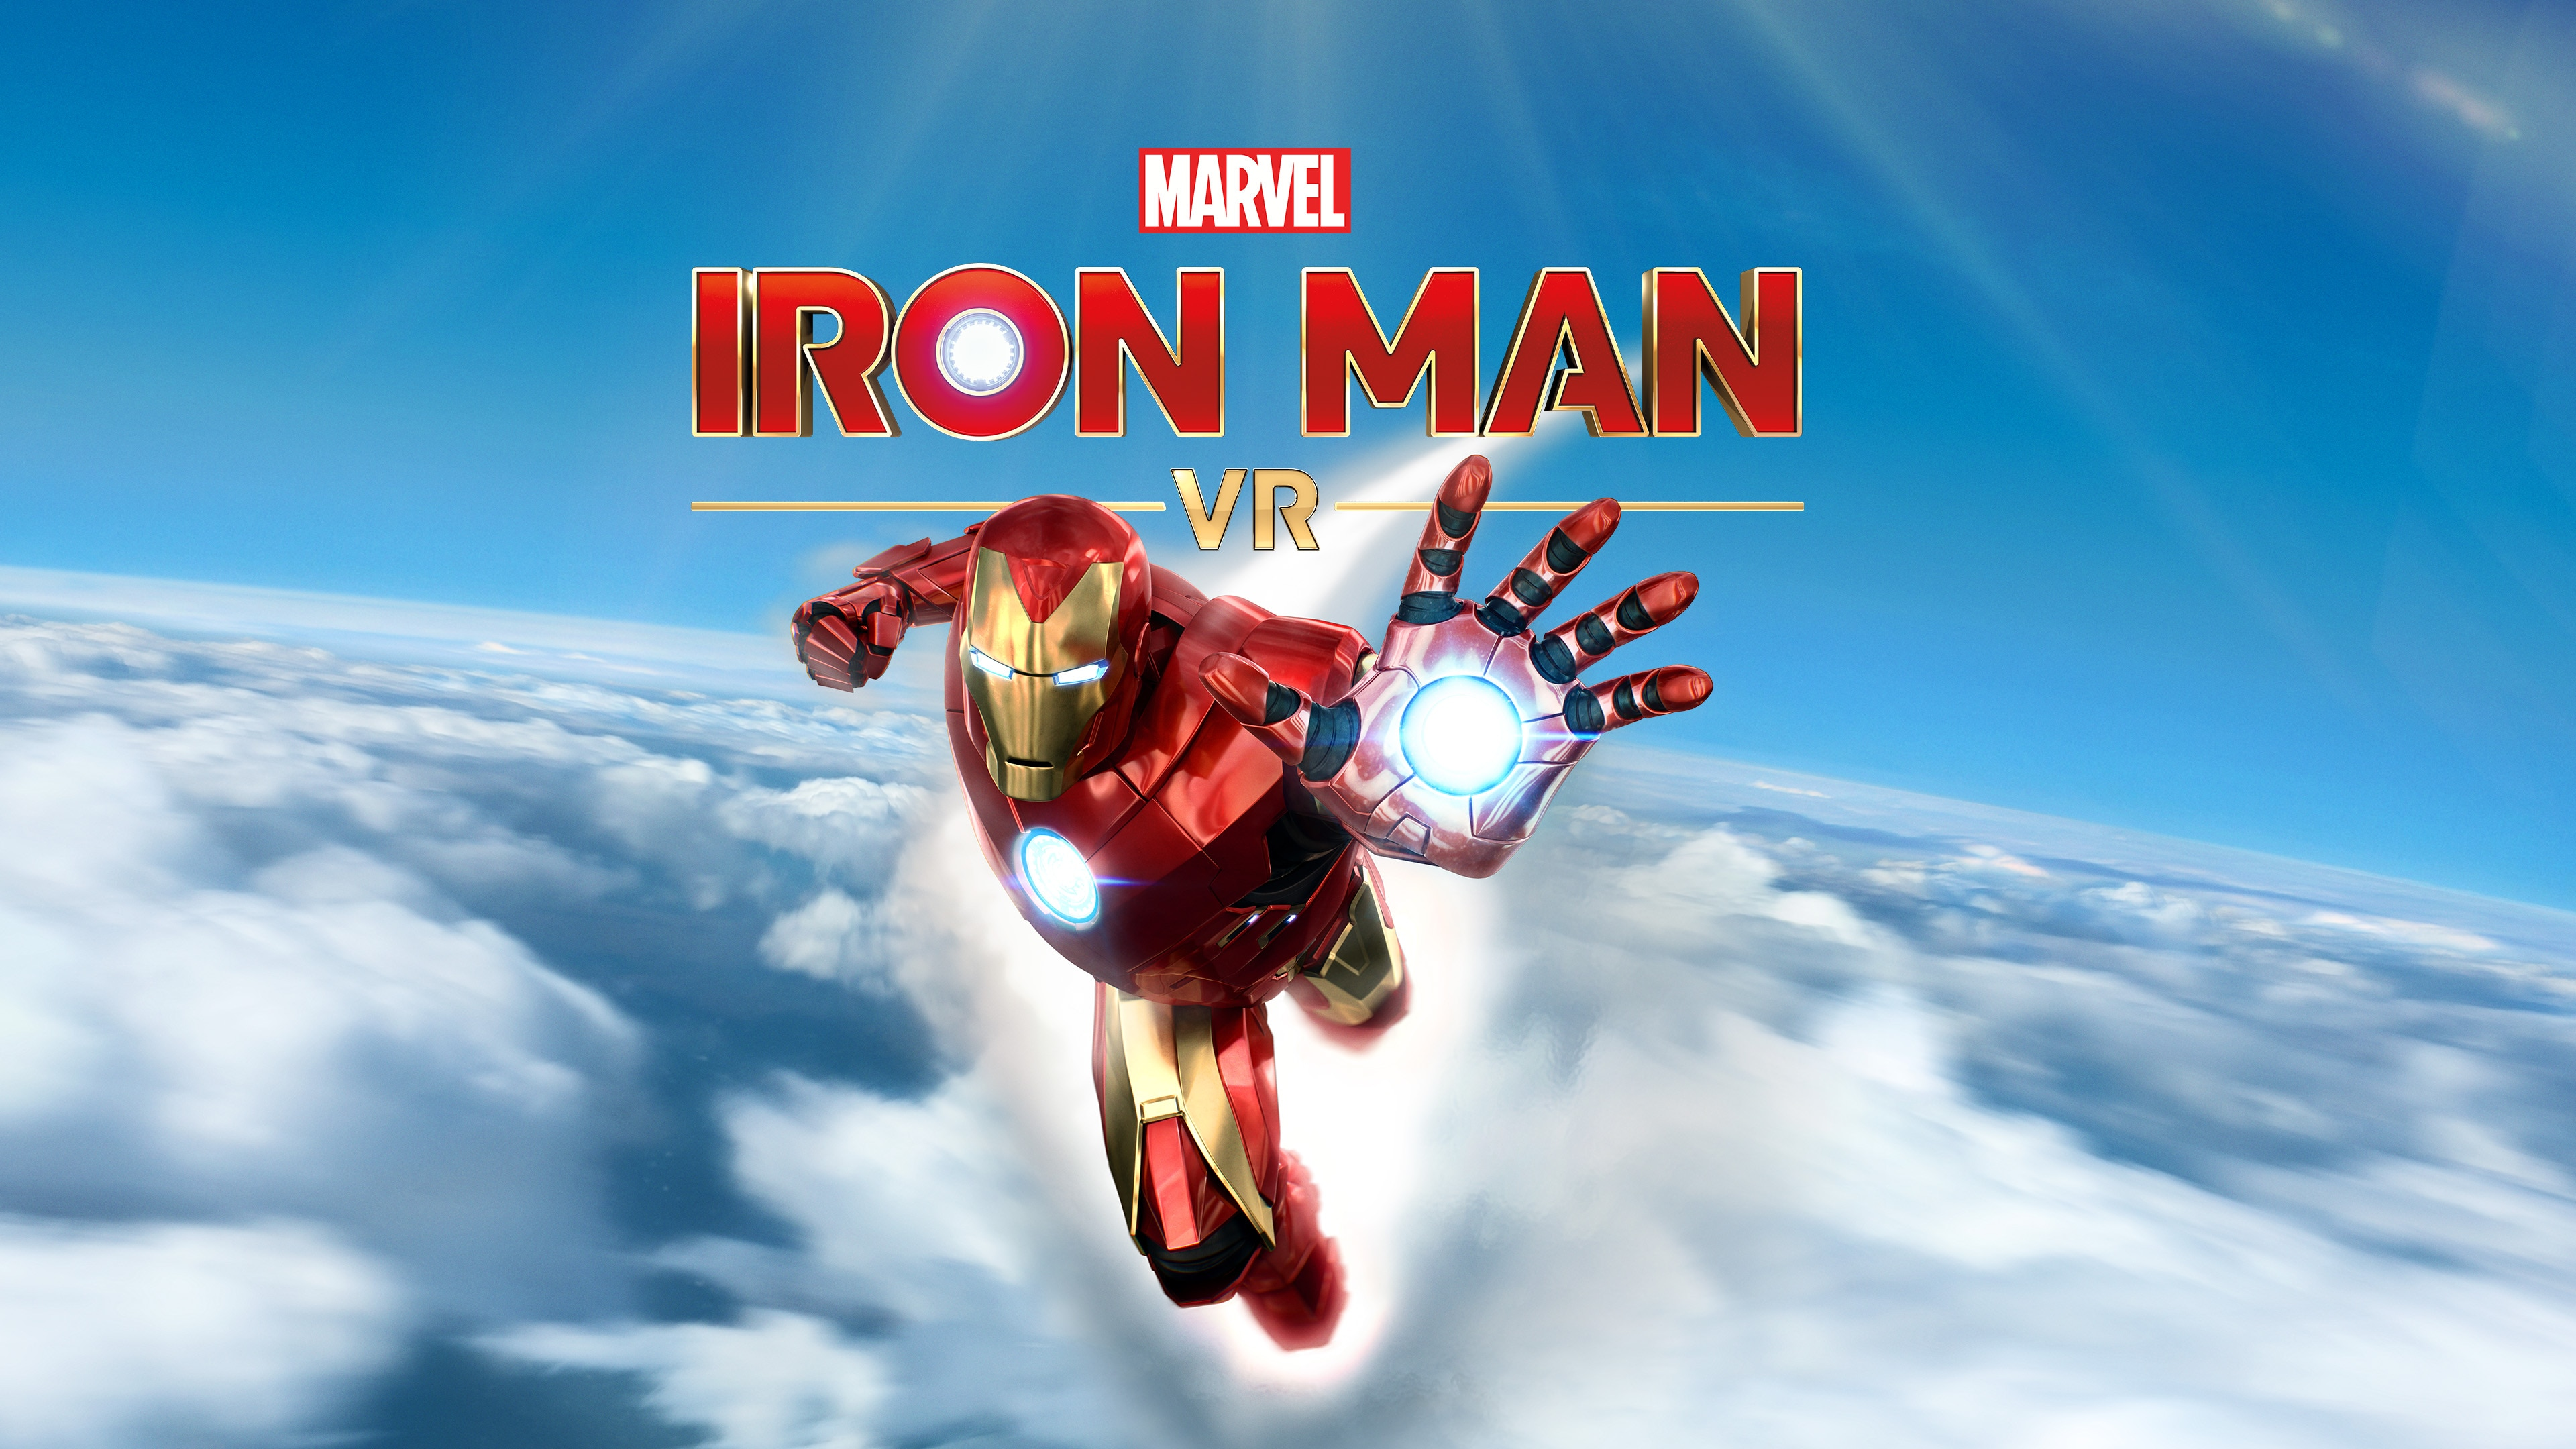 Marvel's Iron Man VR (English, Korean, Japanese, Traditional Chinese)